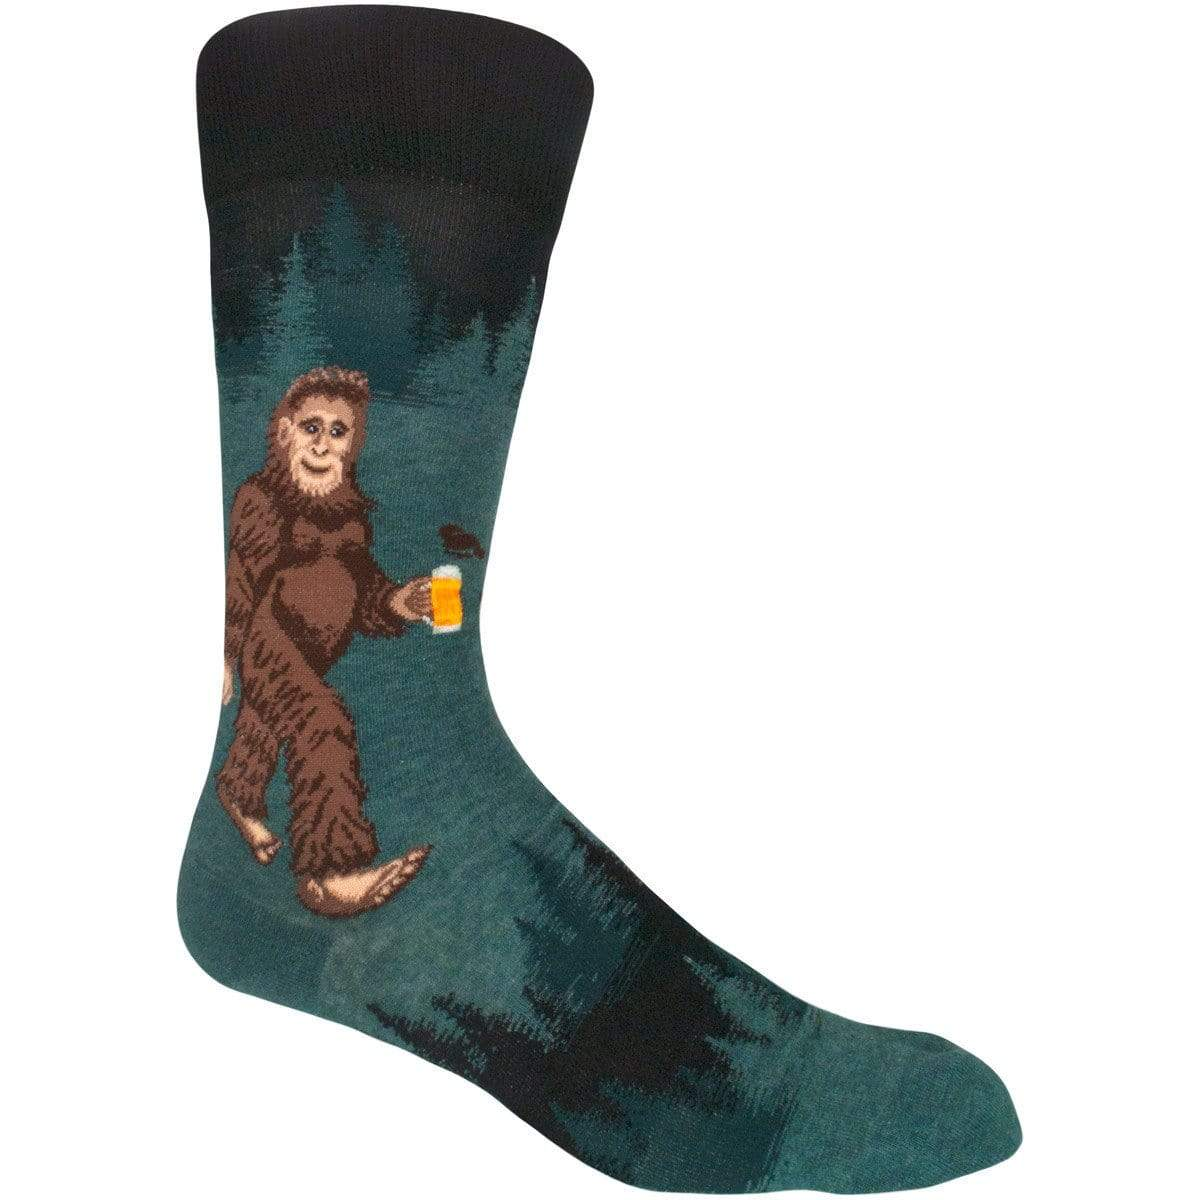 Sasquatch Loves Beer Men's Crew Sock green